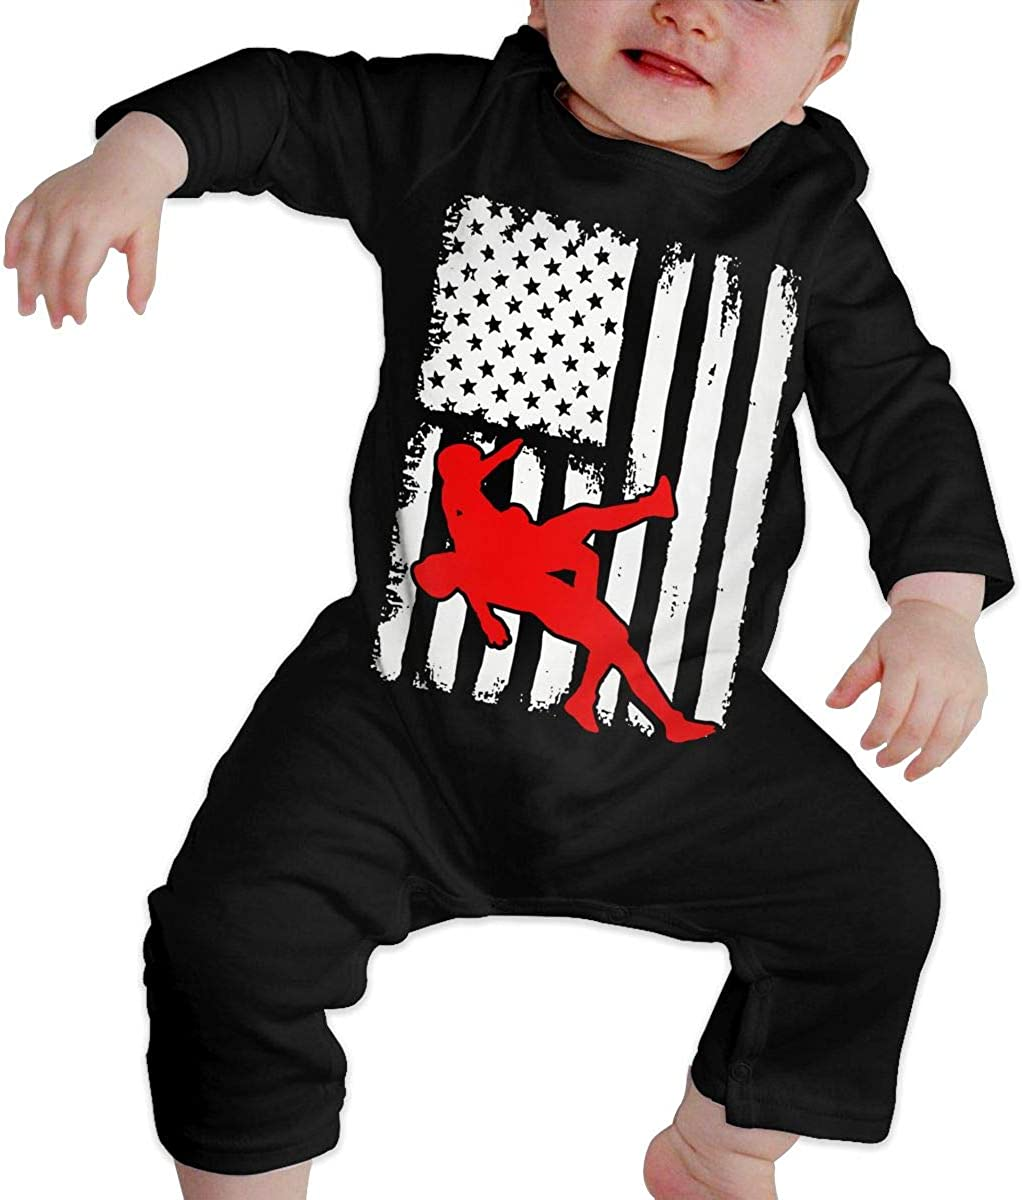 YELTY6F USA Flag Wrestling Printed Newborn Baby Boy Girl One-Piece Suit Long Sleeve Rompers Black